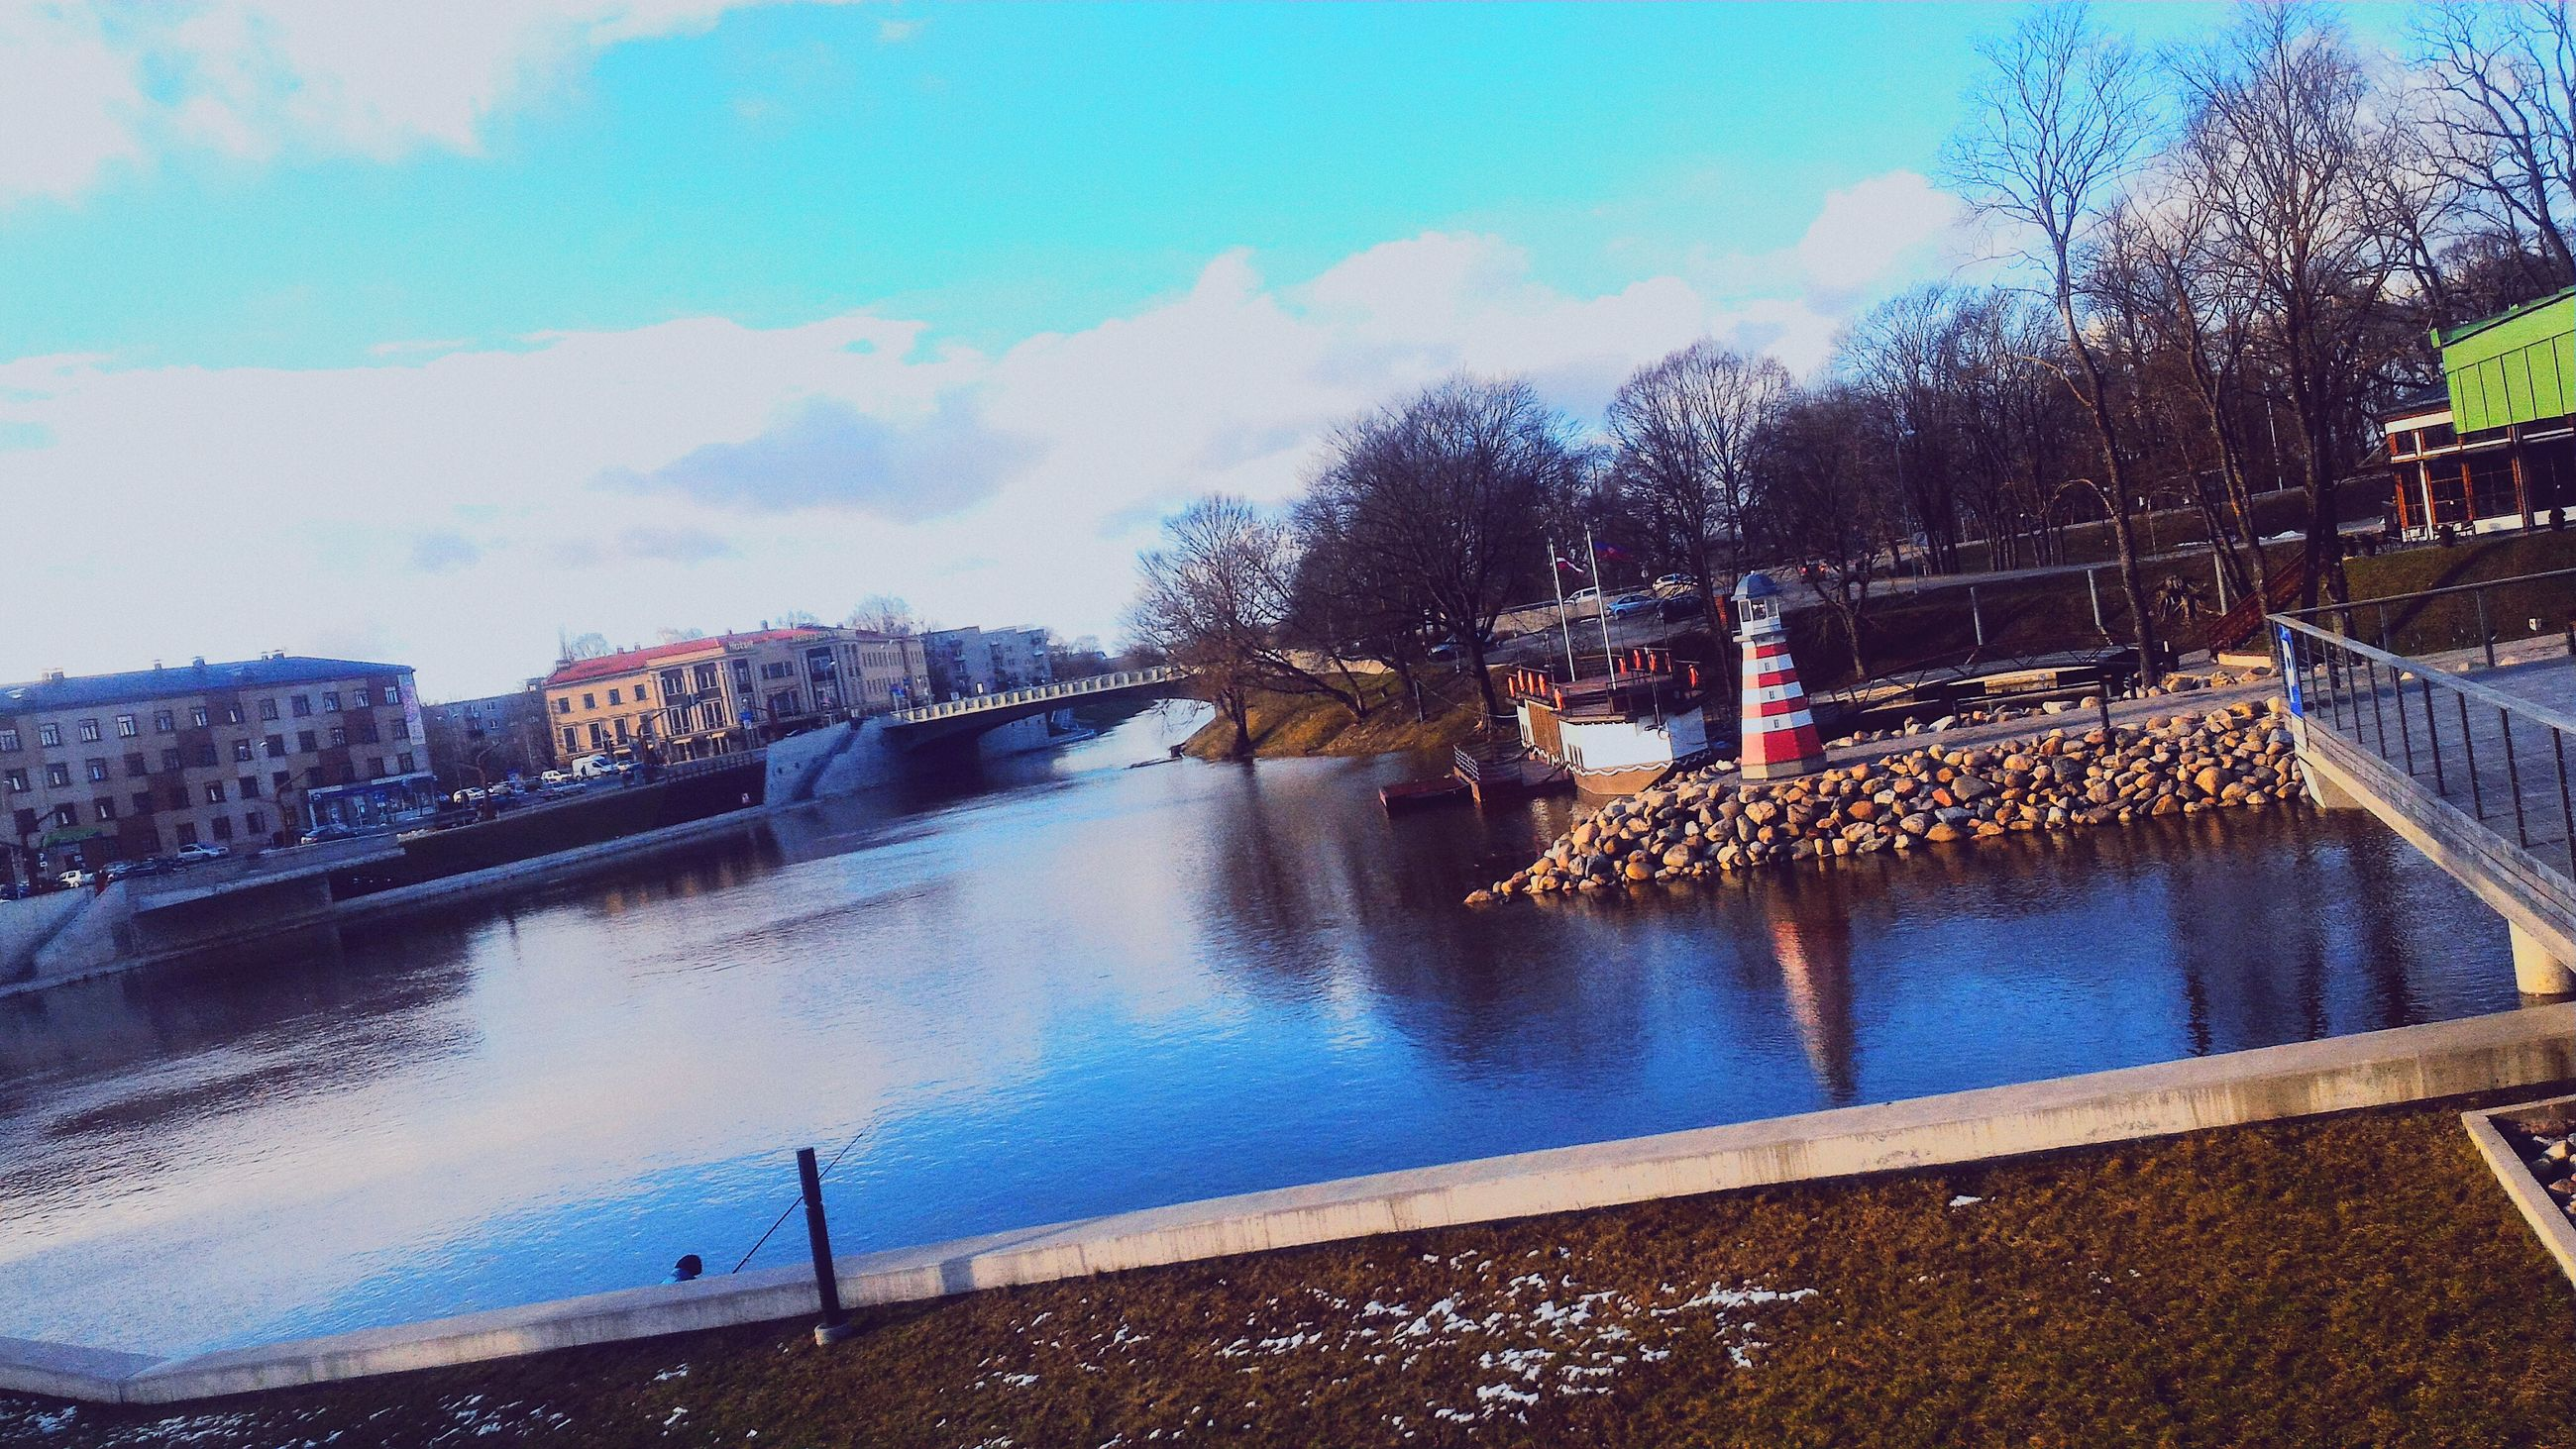 water, tree, built structure, architecture, reflection, railing, building exterior, bridge - man made structure, river, sky, fountain, connection, city, canal, day, outdoors, nature, blue, bare tree, waterfront